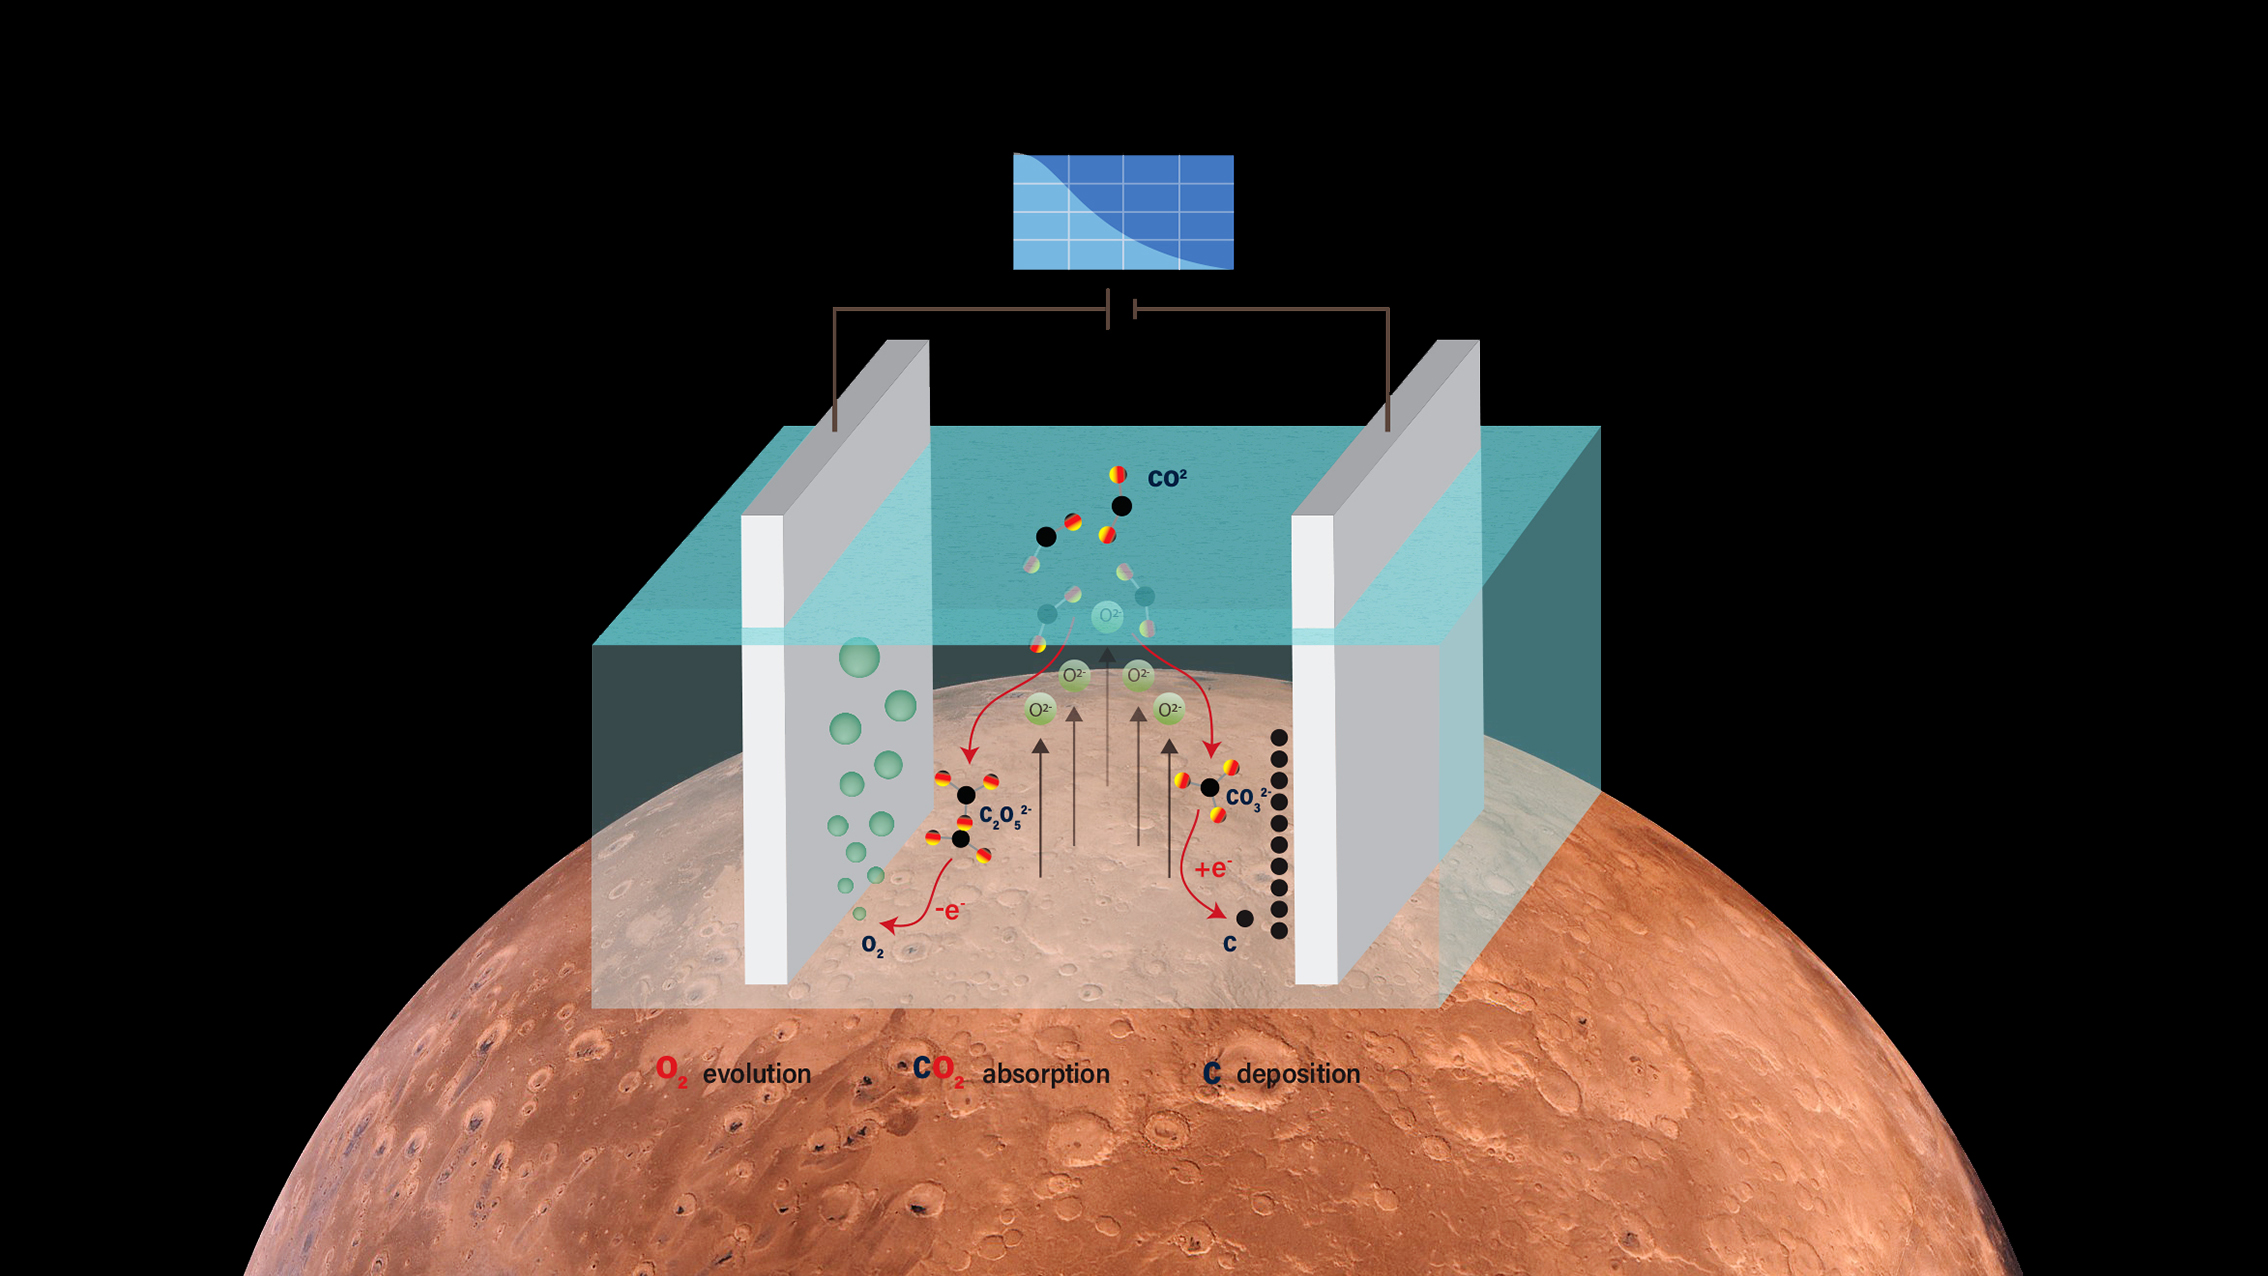 UP Catalyst co-founder Dr Sander Ratso will join European Space Agency for a post-doc research on oxygen generation and energy storage on Mars